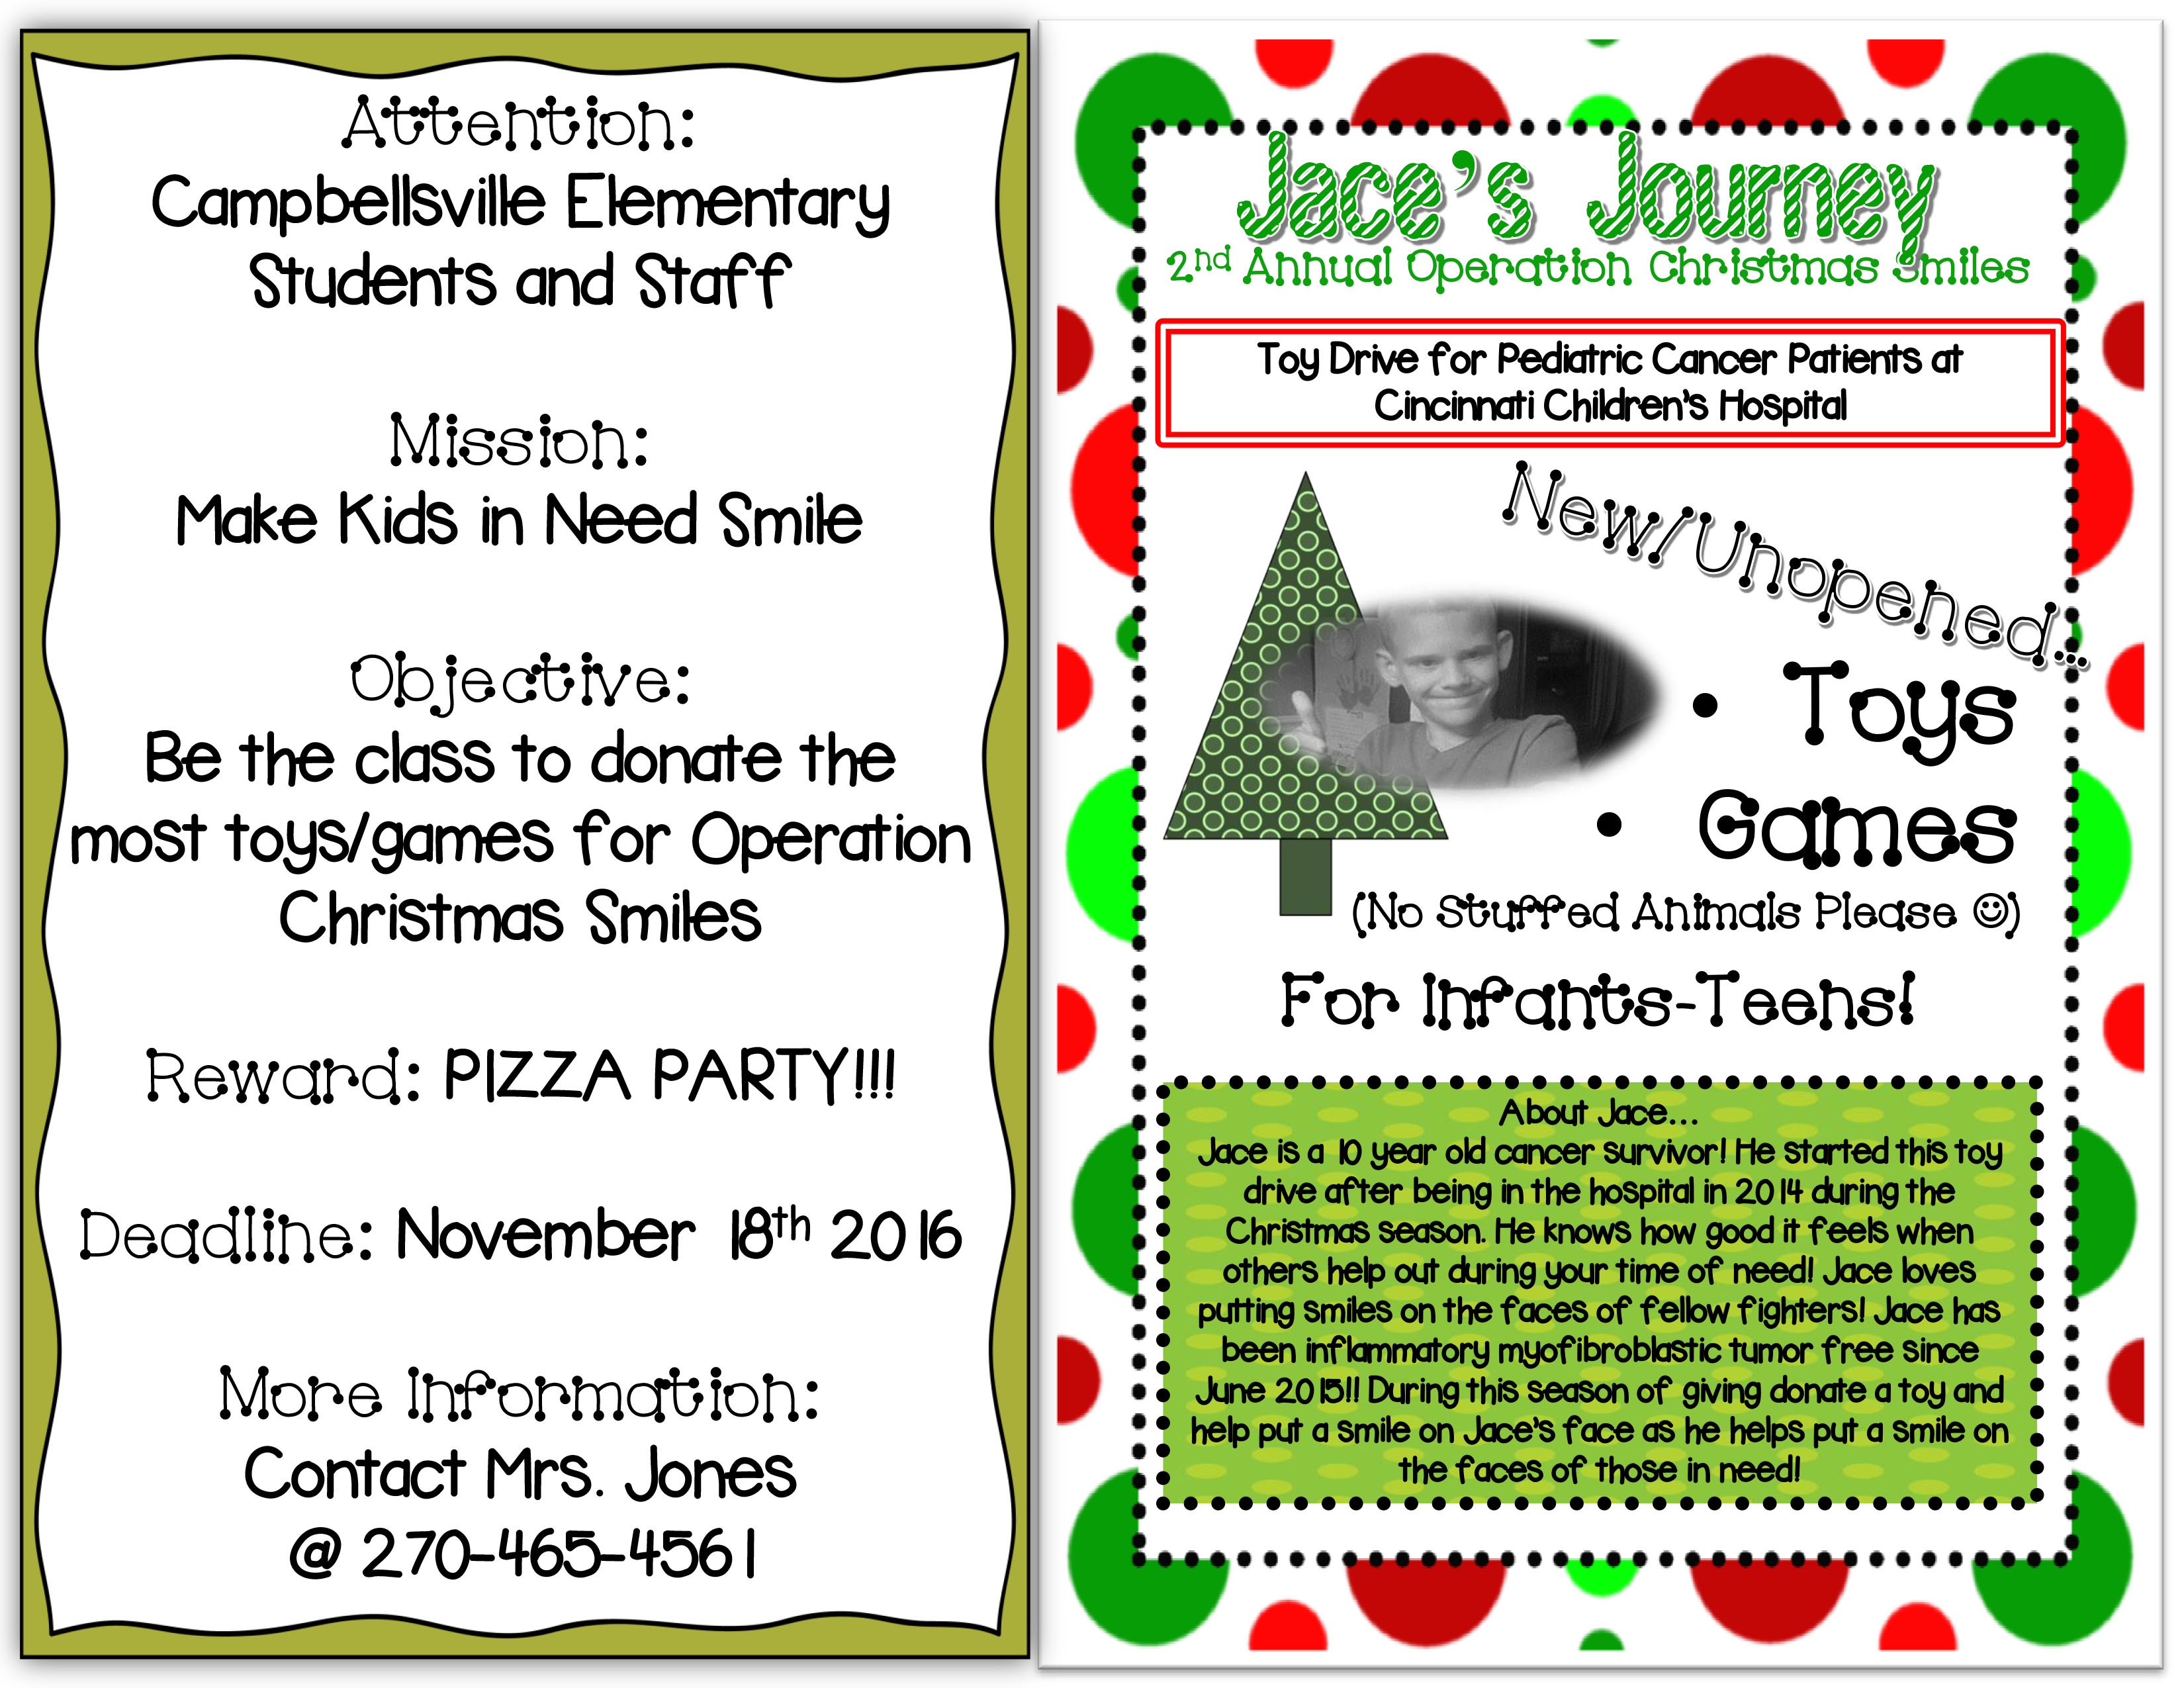 Campbellsville Elementary School students are participating in a toy drive challenge to benefit hospitalized children.  CES students have been challenged to bring as many new and unopened toys and games as possible to school. The items will be donated to Operation Christmas Smiles.